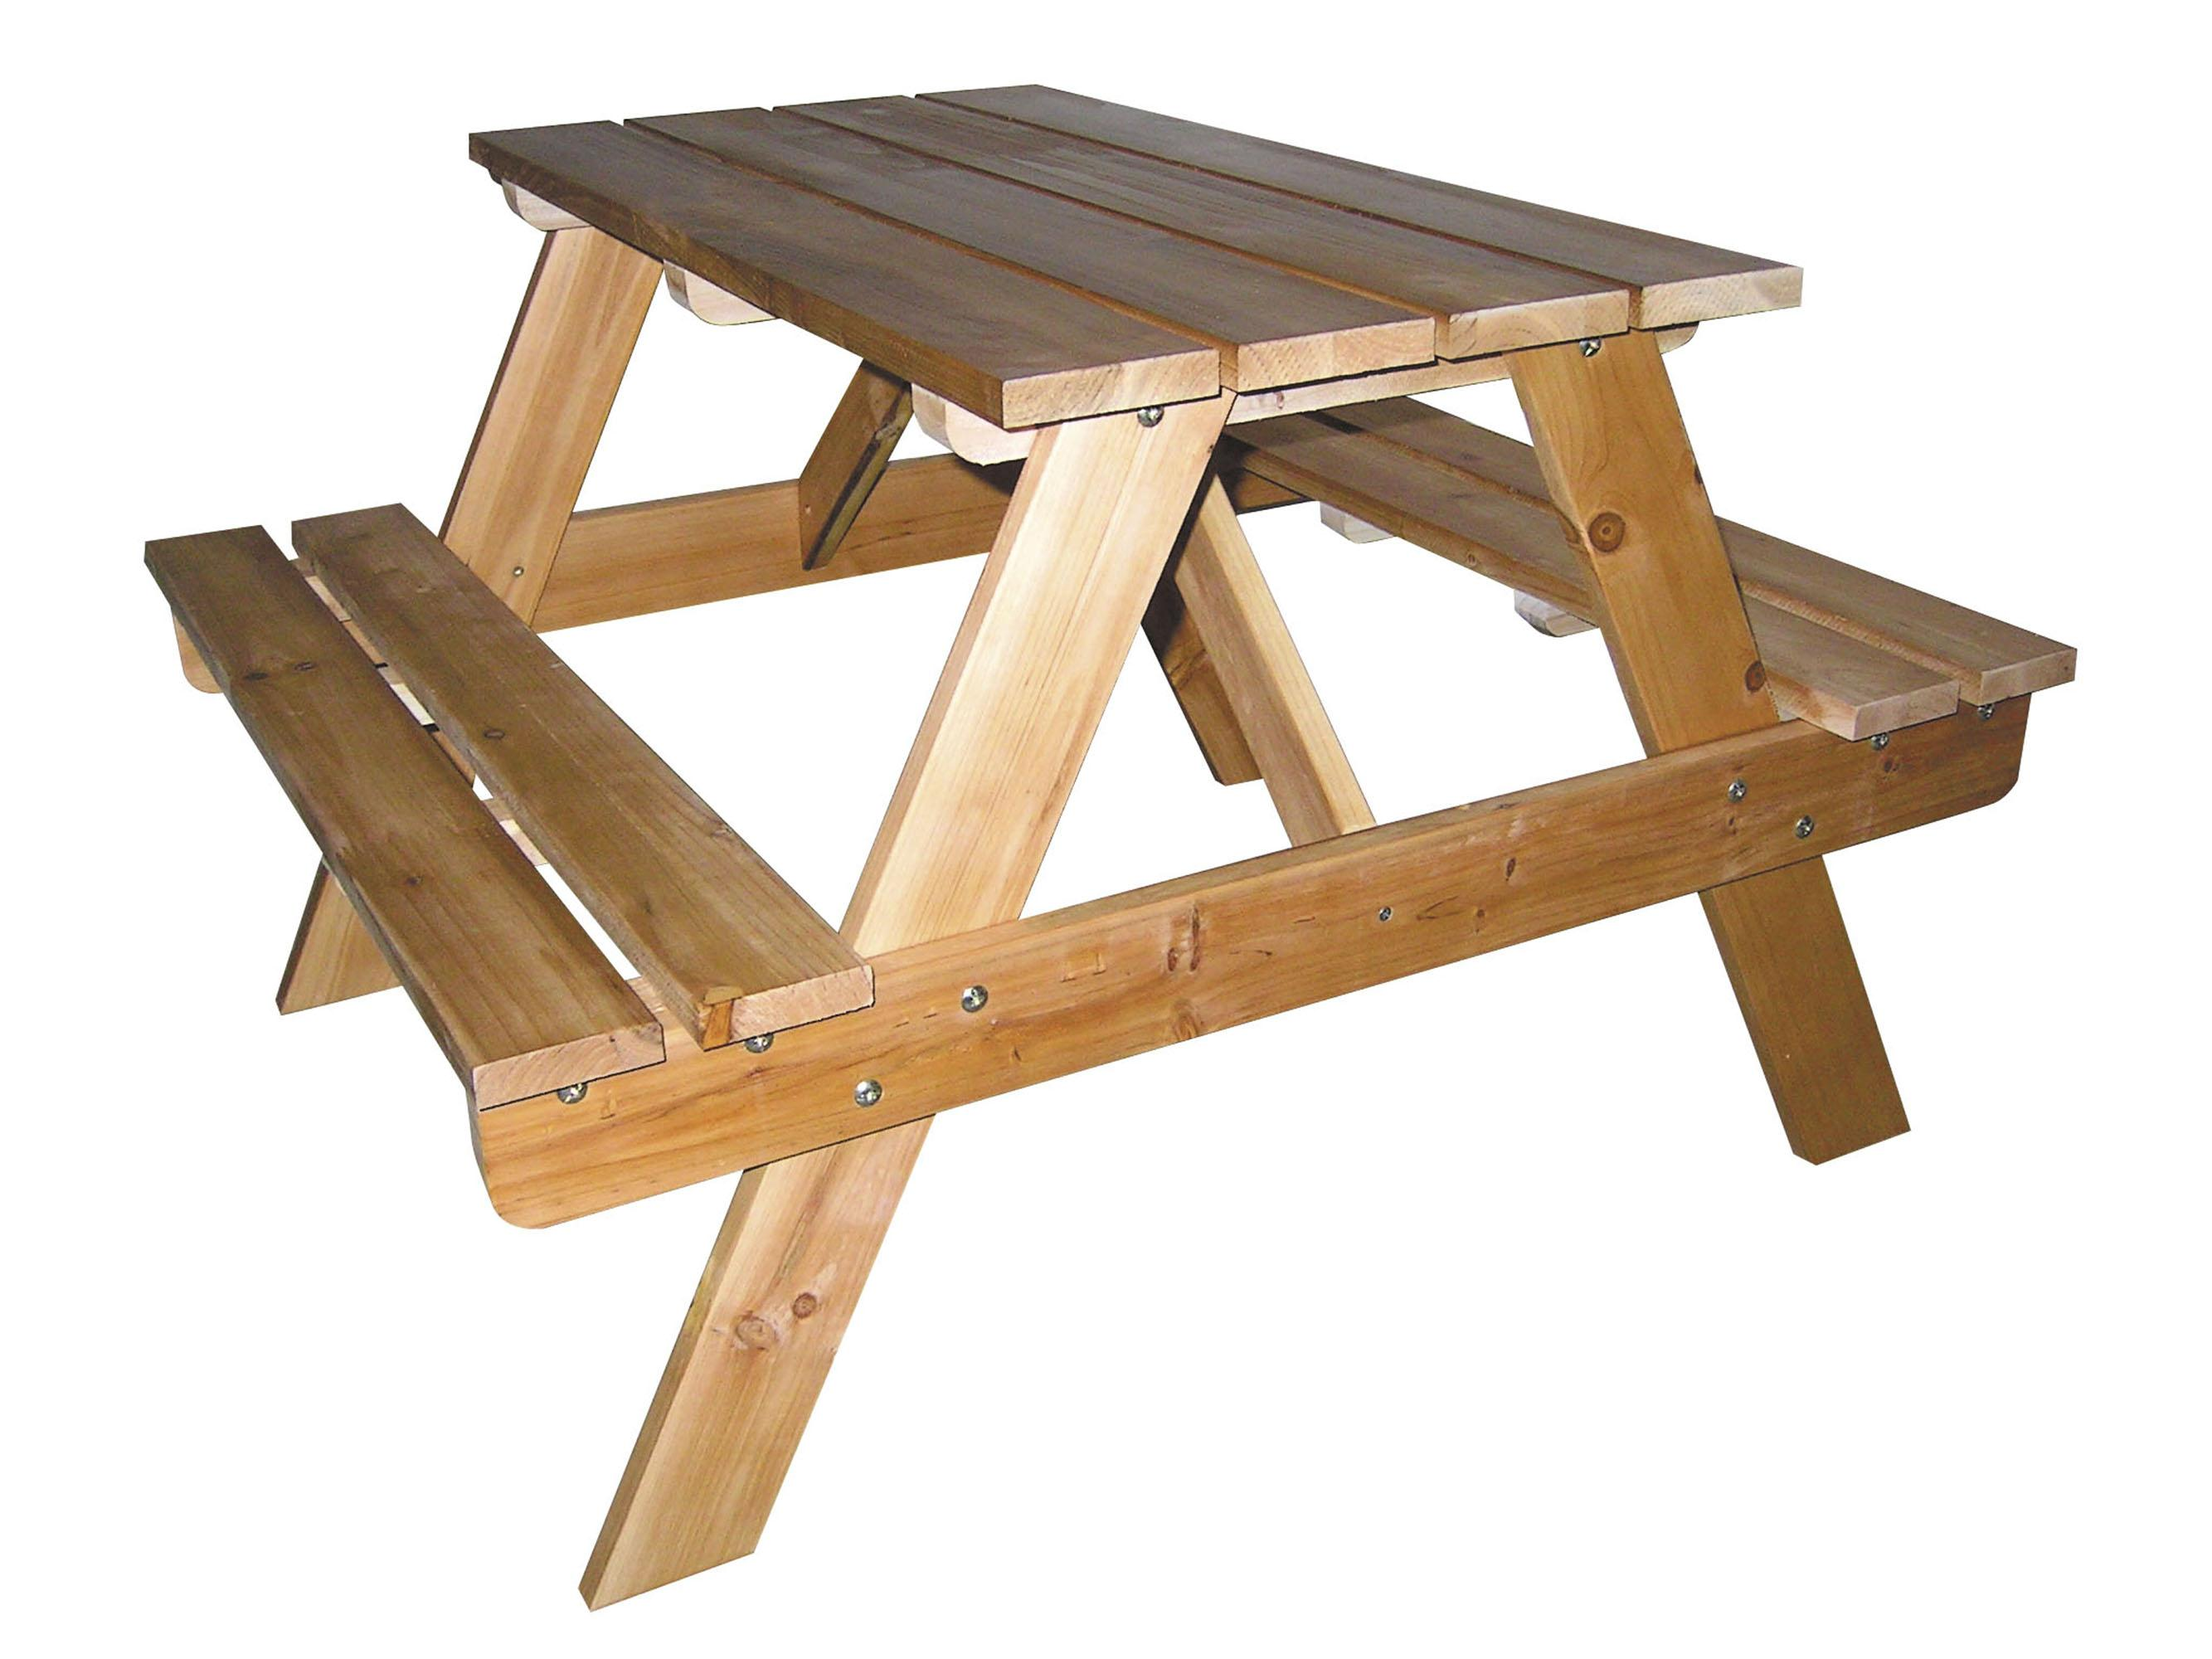 Ore International Kids Indoor Outdoor Picnic Table By Oj Commerce H 63